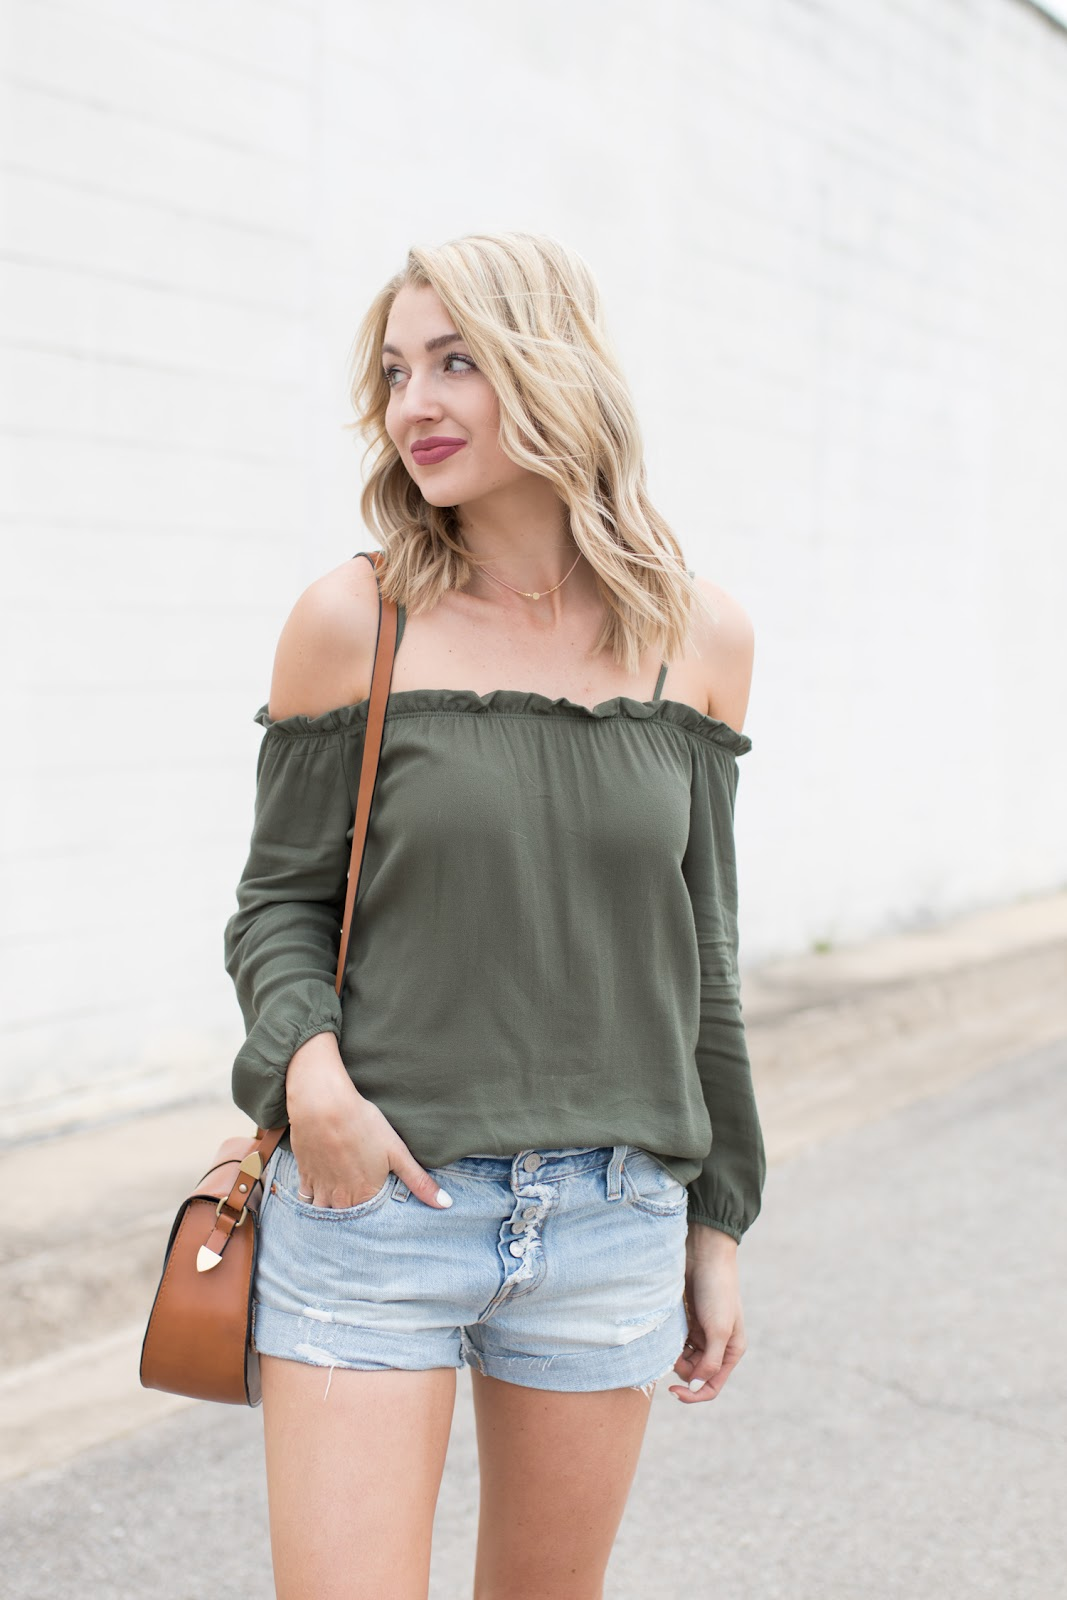 Off-the-shoulder top with jean shorts